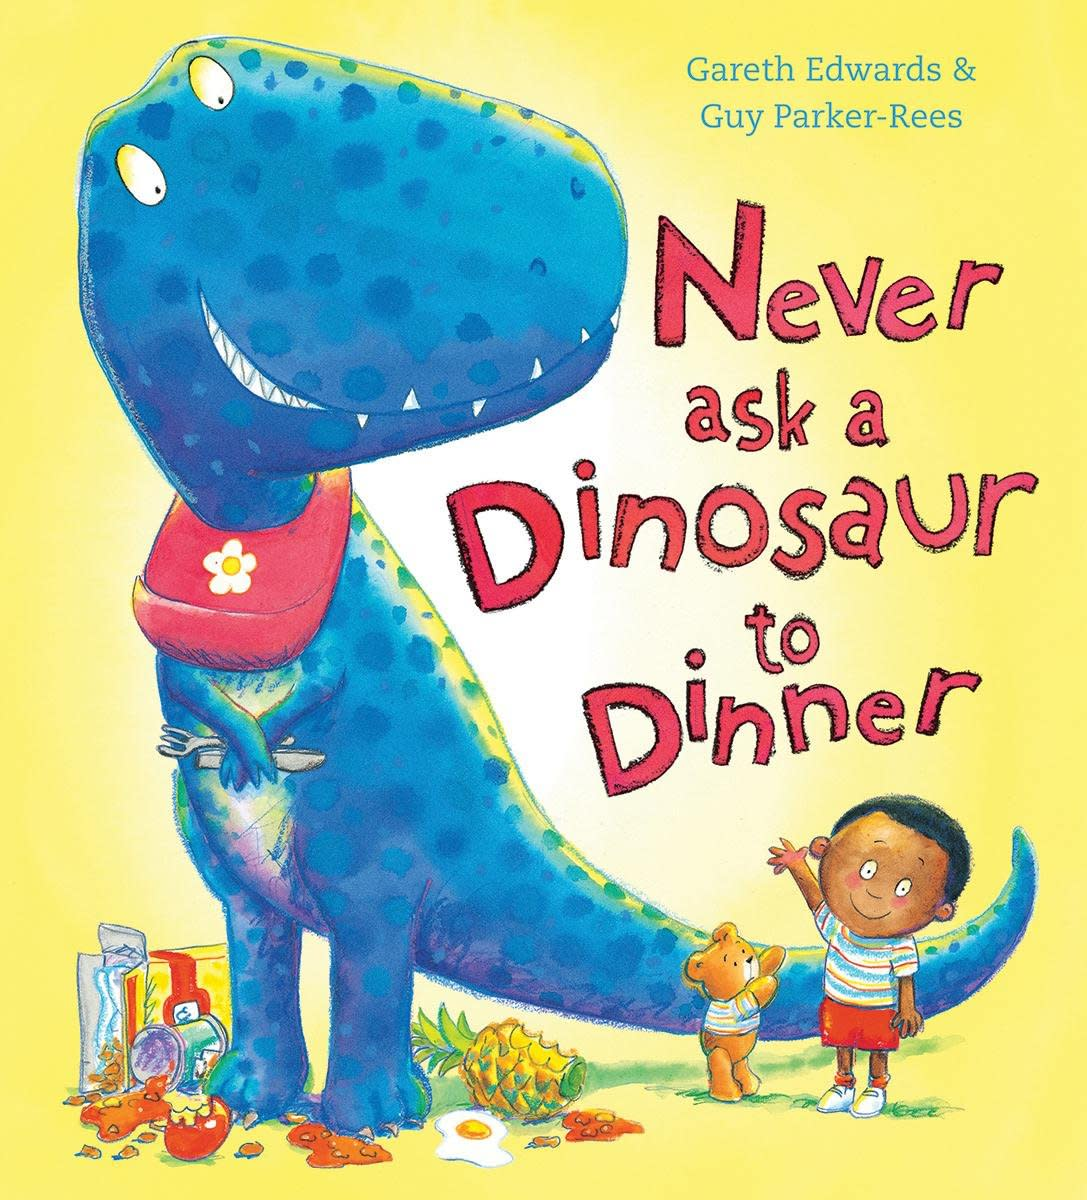 Never Ask a Dinosaur to Dinner by Gareth Edwards & Guy Parker-Rees